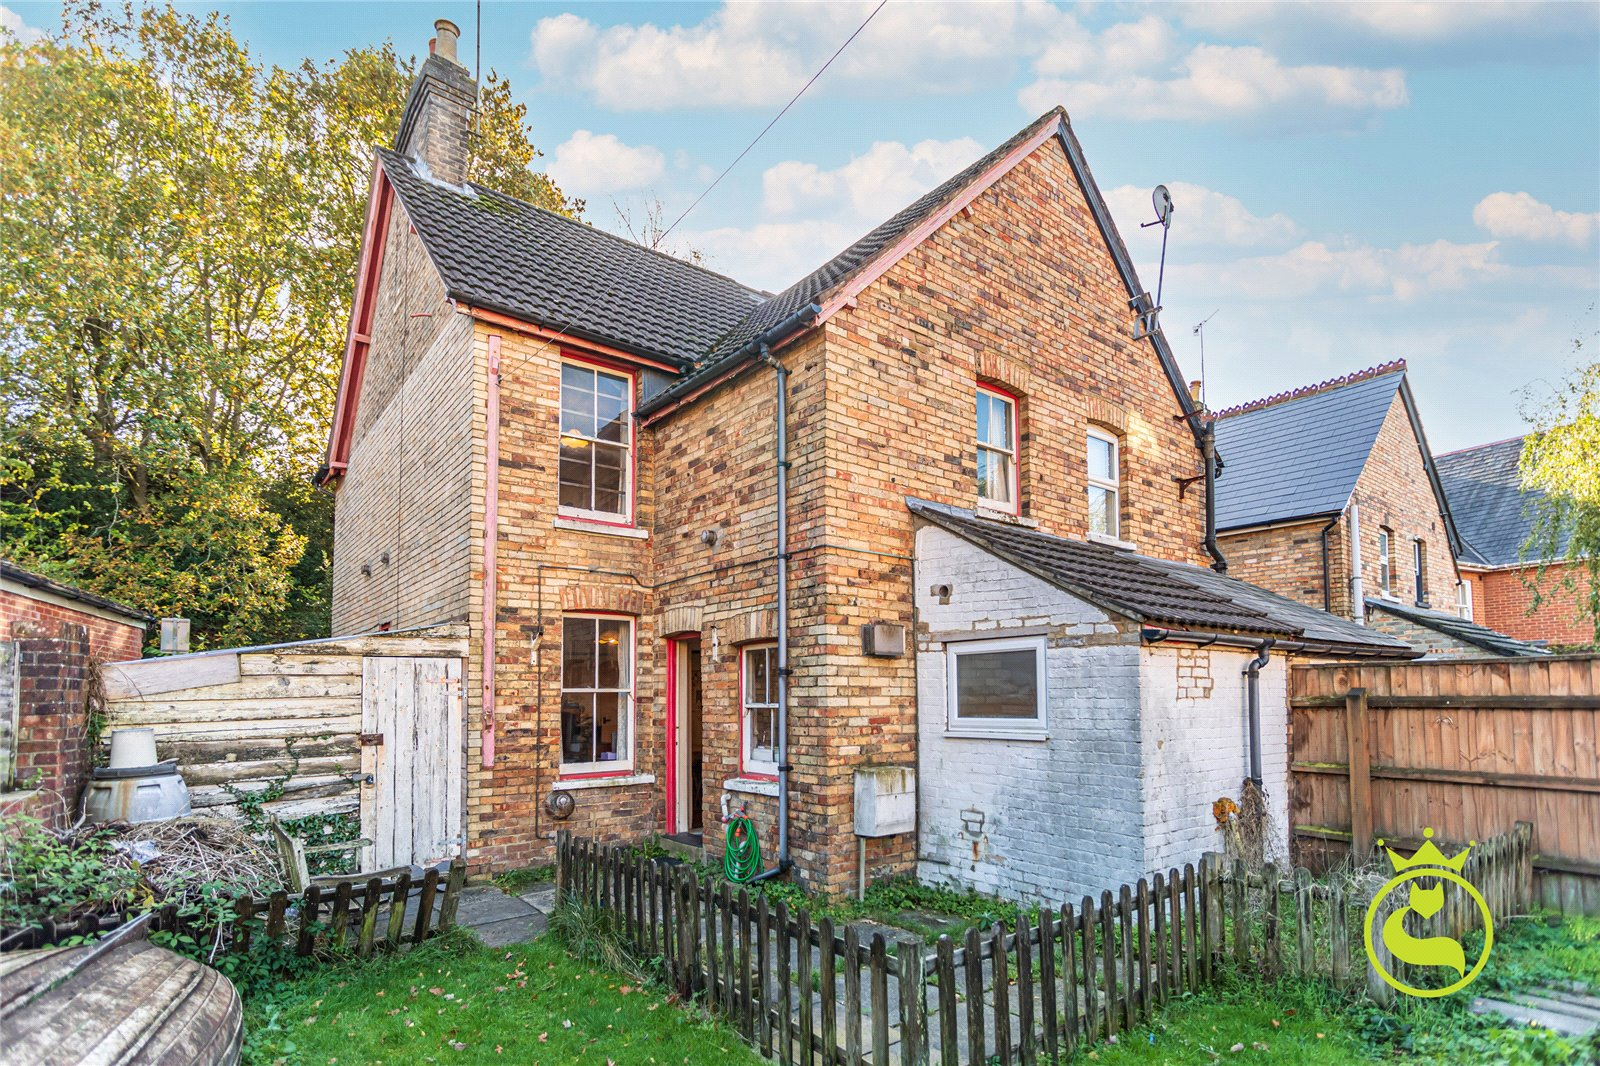 3 bed house for sale in Approach Road, Ashley Cross, BH14